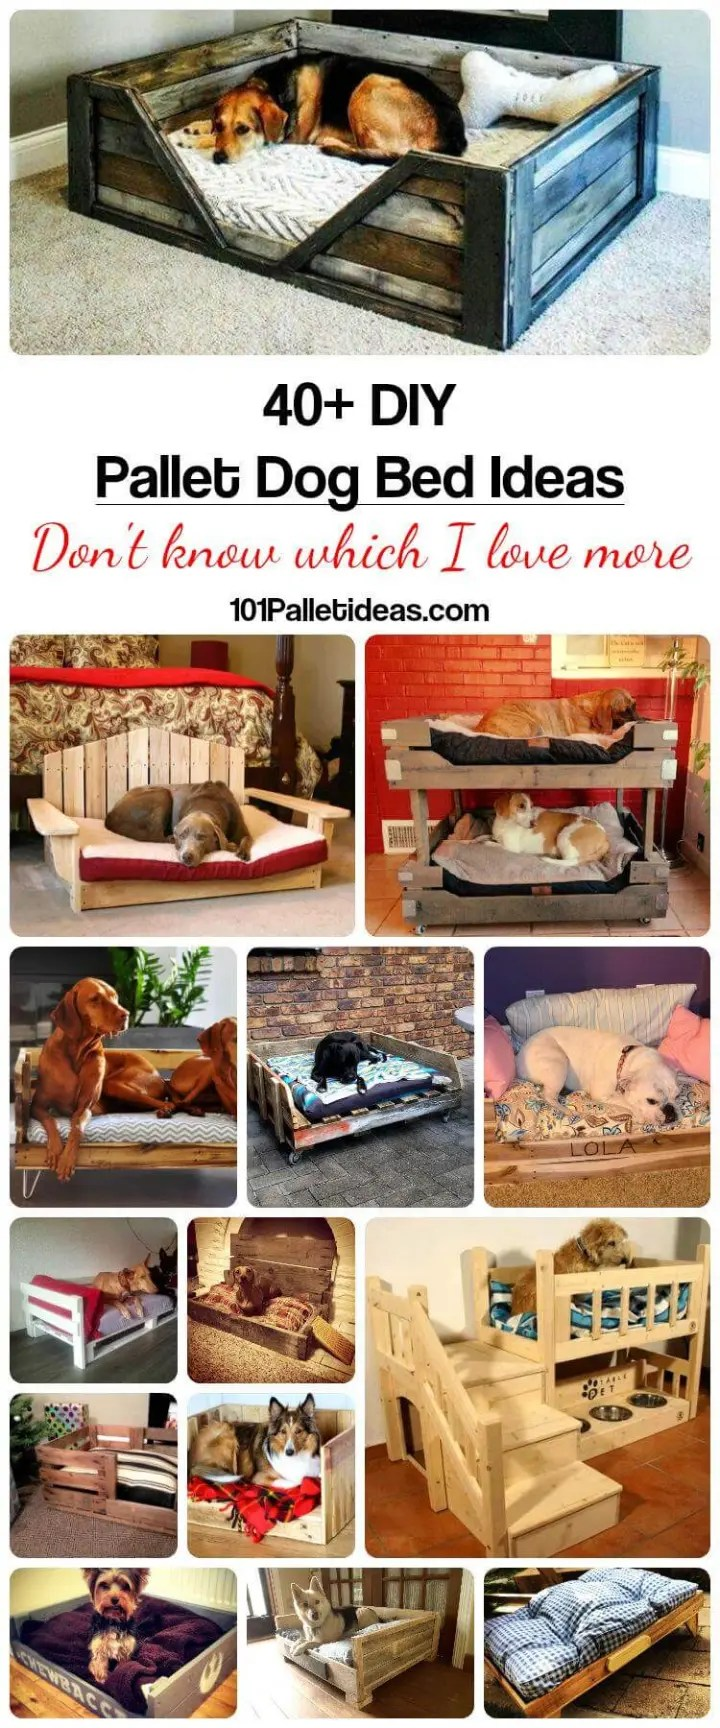 40 Diy Pallet Dog Bed Ideas Don T Know Which I Love More Easy Pallet Ideas